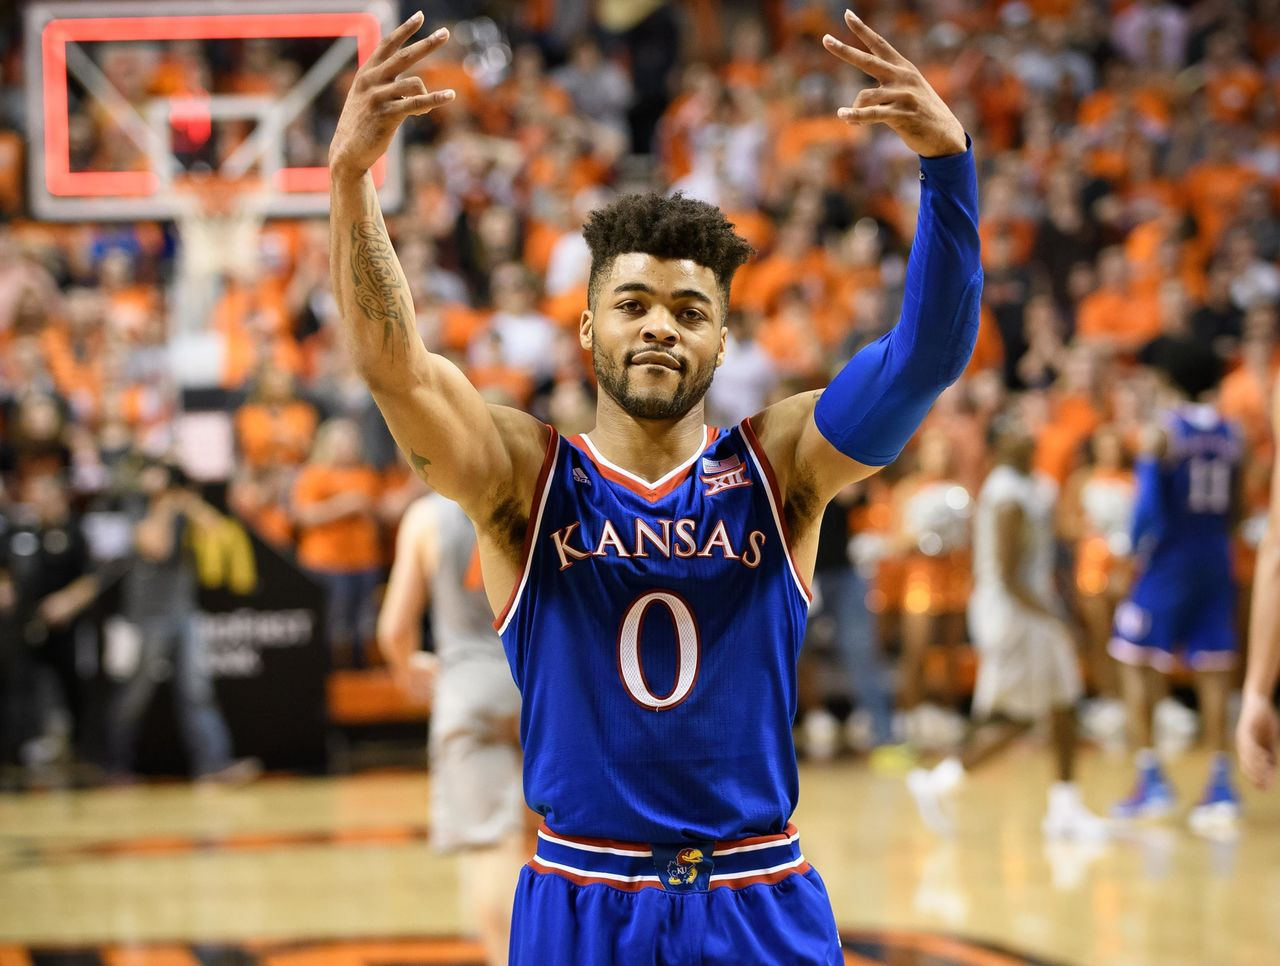 frank mason Frank mason iii #10 pos: guard ht: 5-11 wt: 190 dob: 4/3/94 selected by sacramento out of the university of kansas in the second round (34th overall) of the 2017 nba draft.